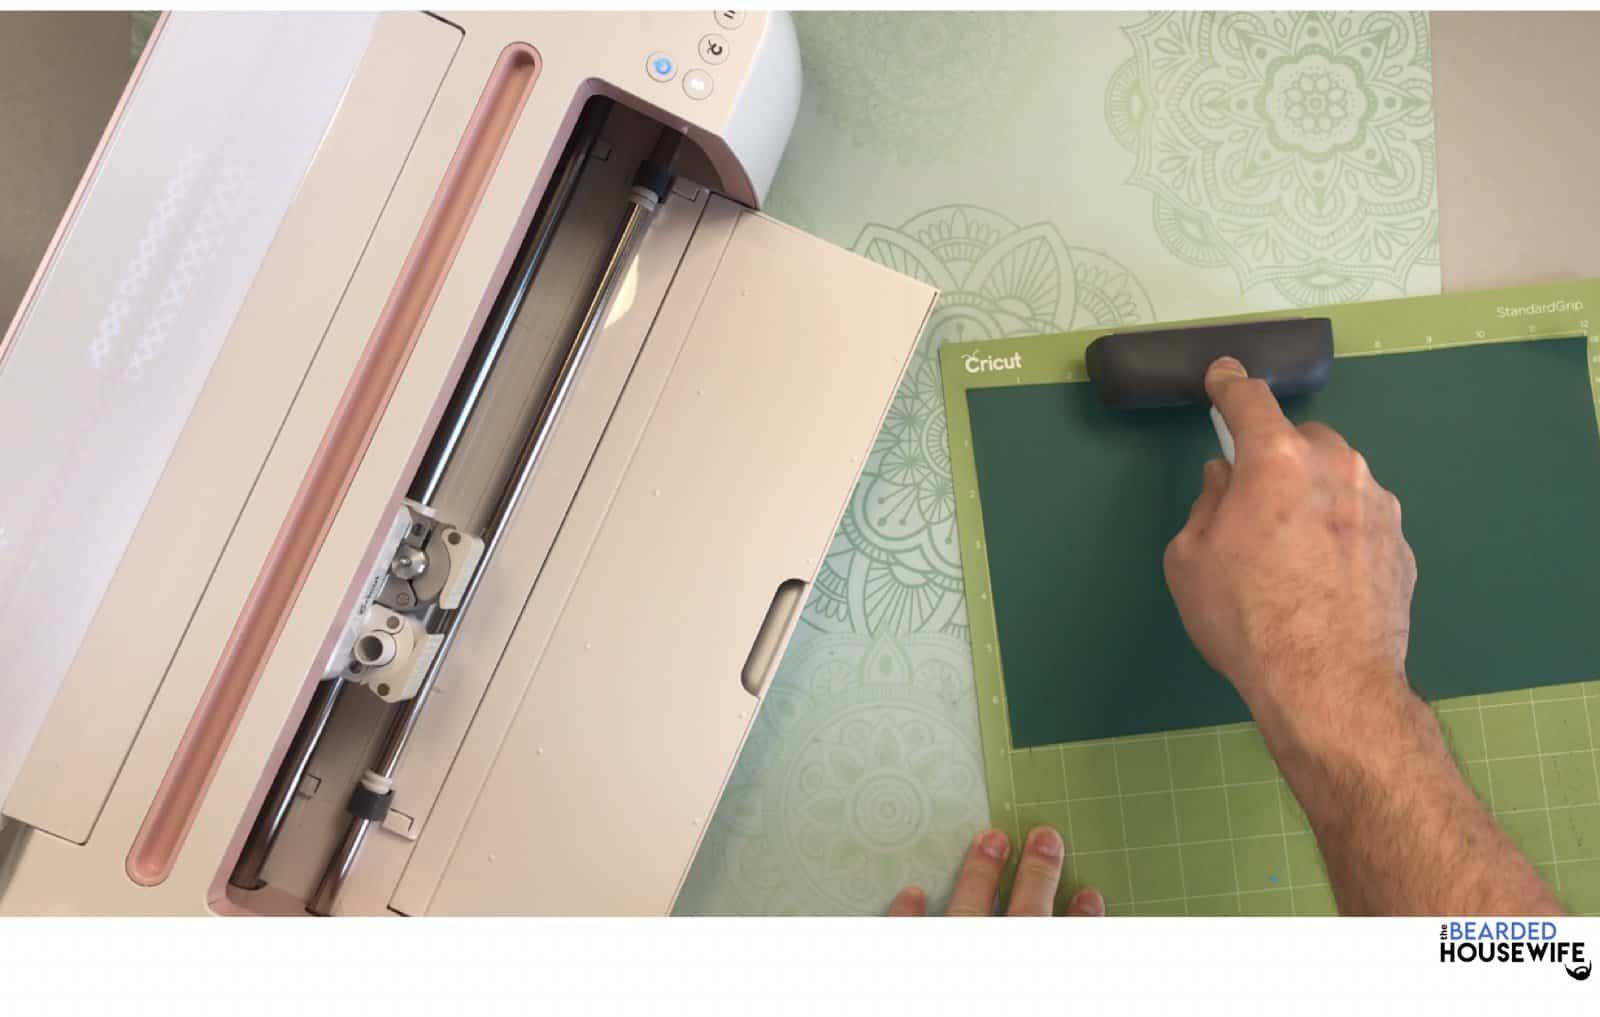 use a brayer to help adhere the vinyl to the mat